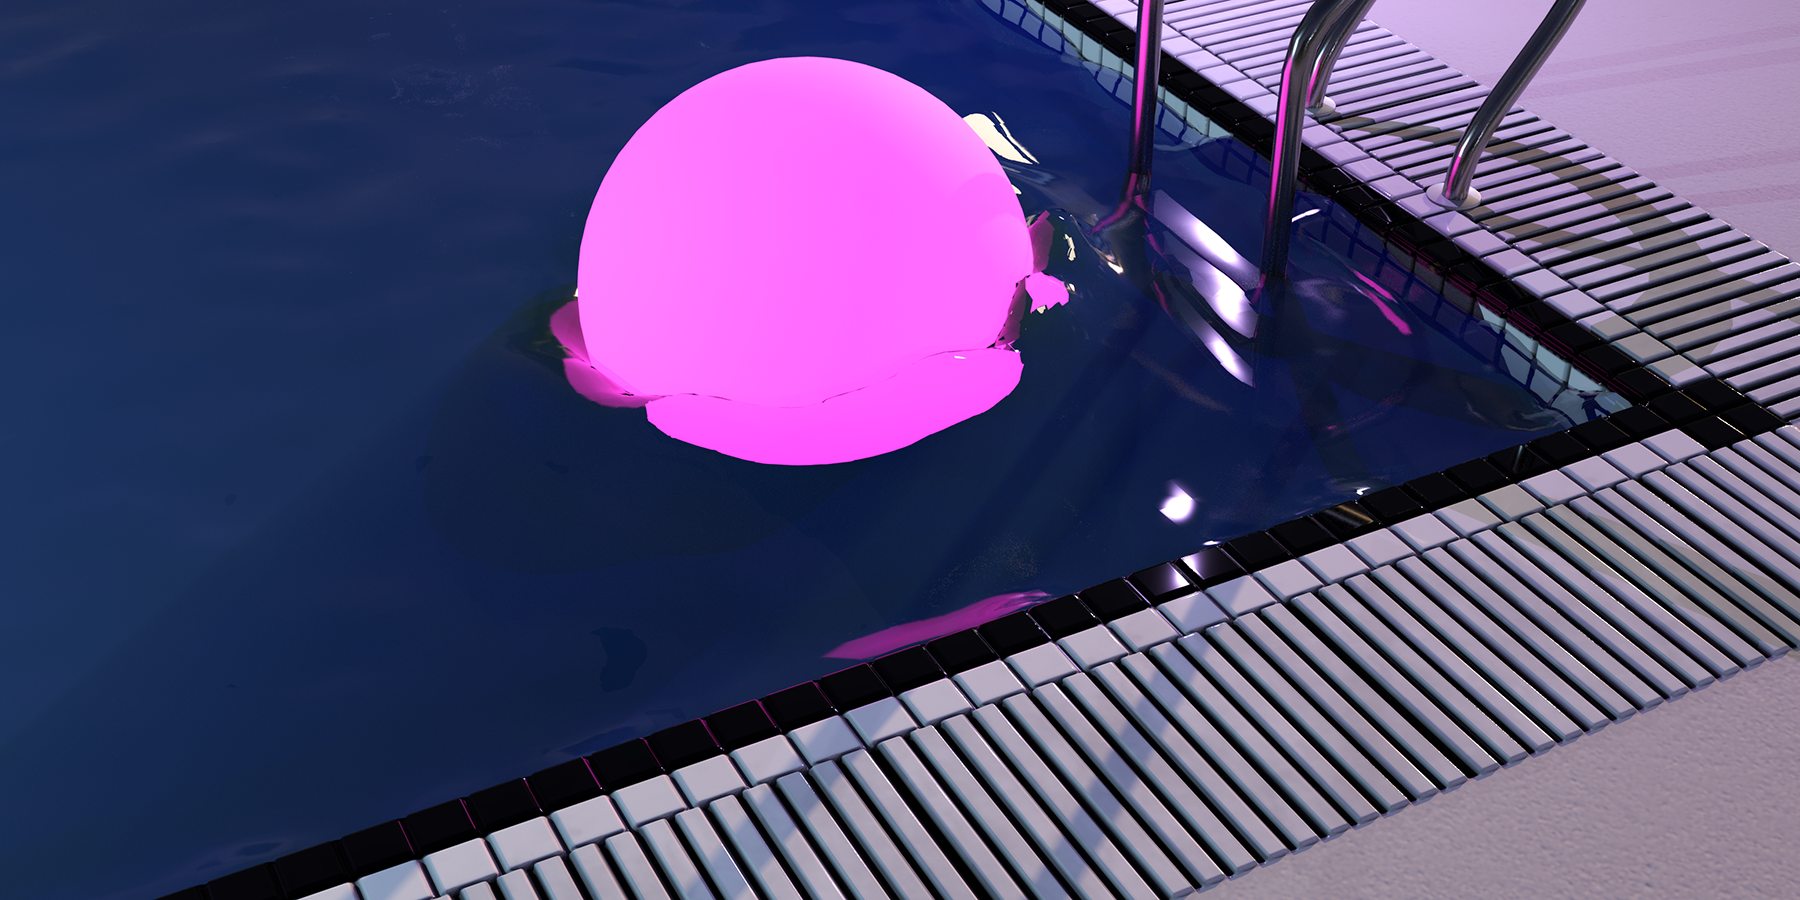 pool_light.mantra_ipr.0100_small.png